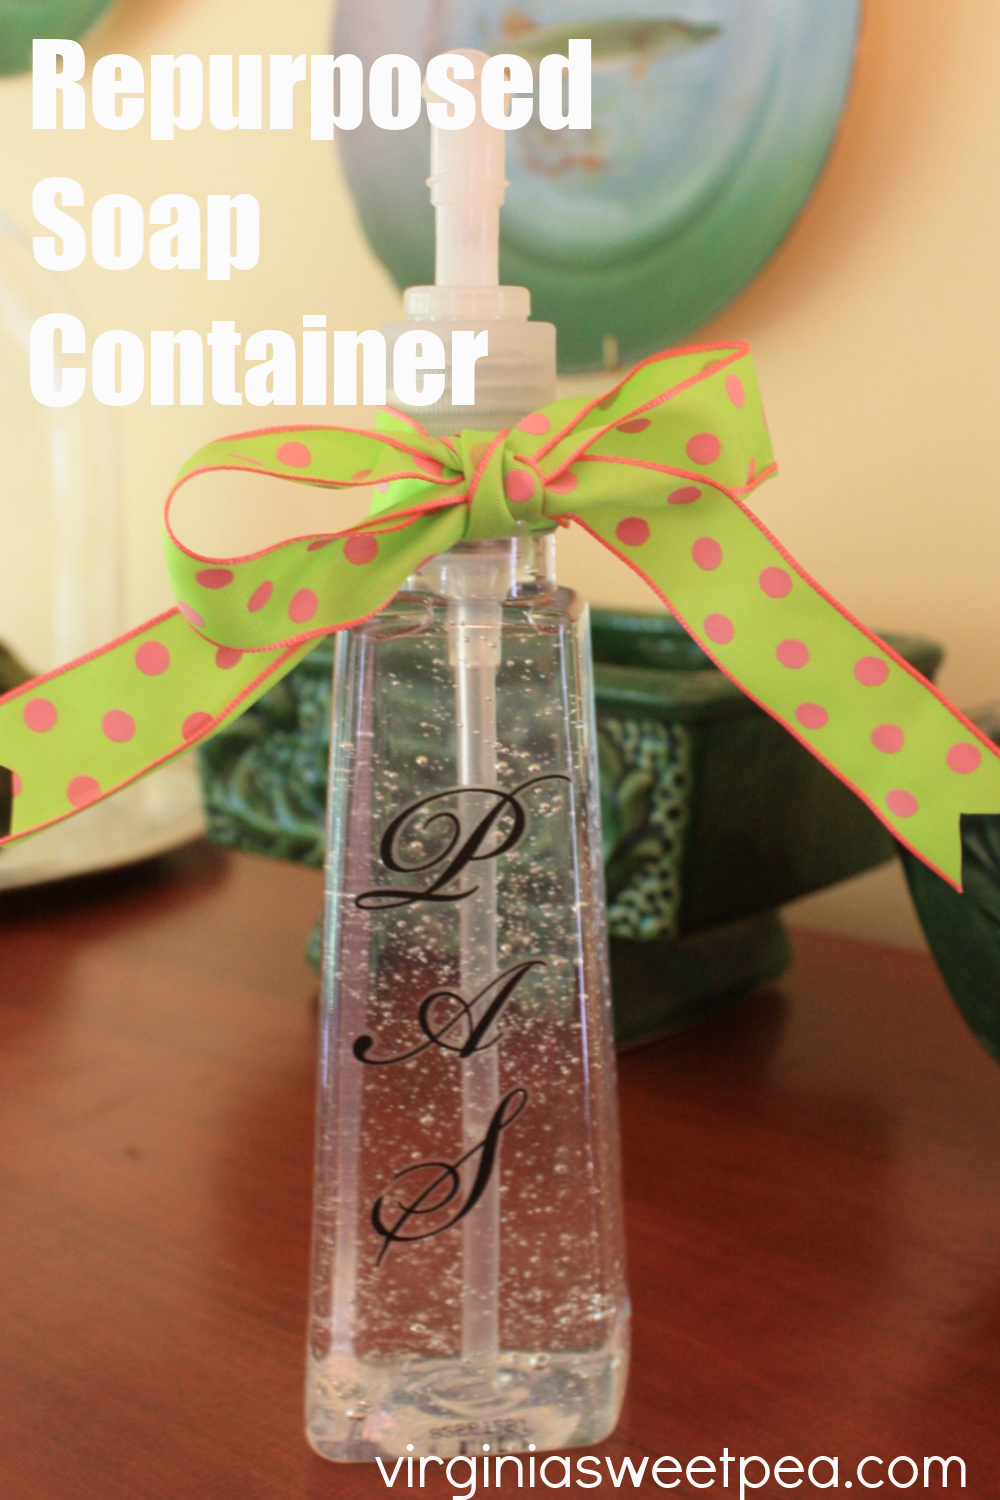 Repurposed Soap Container - Embellish an empty soap container with rub-on letter and ribbon and reuse for either soap or hand sanitzer. #upcycled #repurposed #upcycledproject #repurposedproject via @spaula